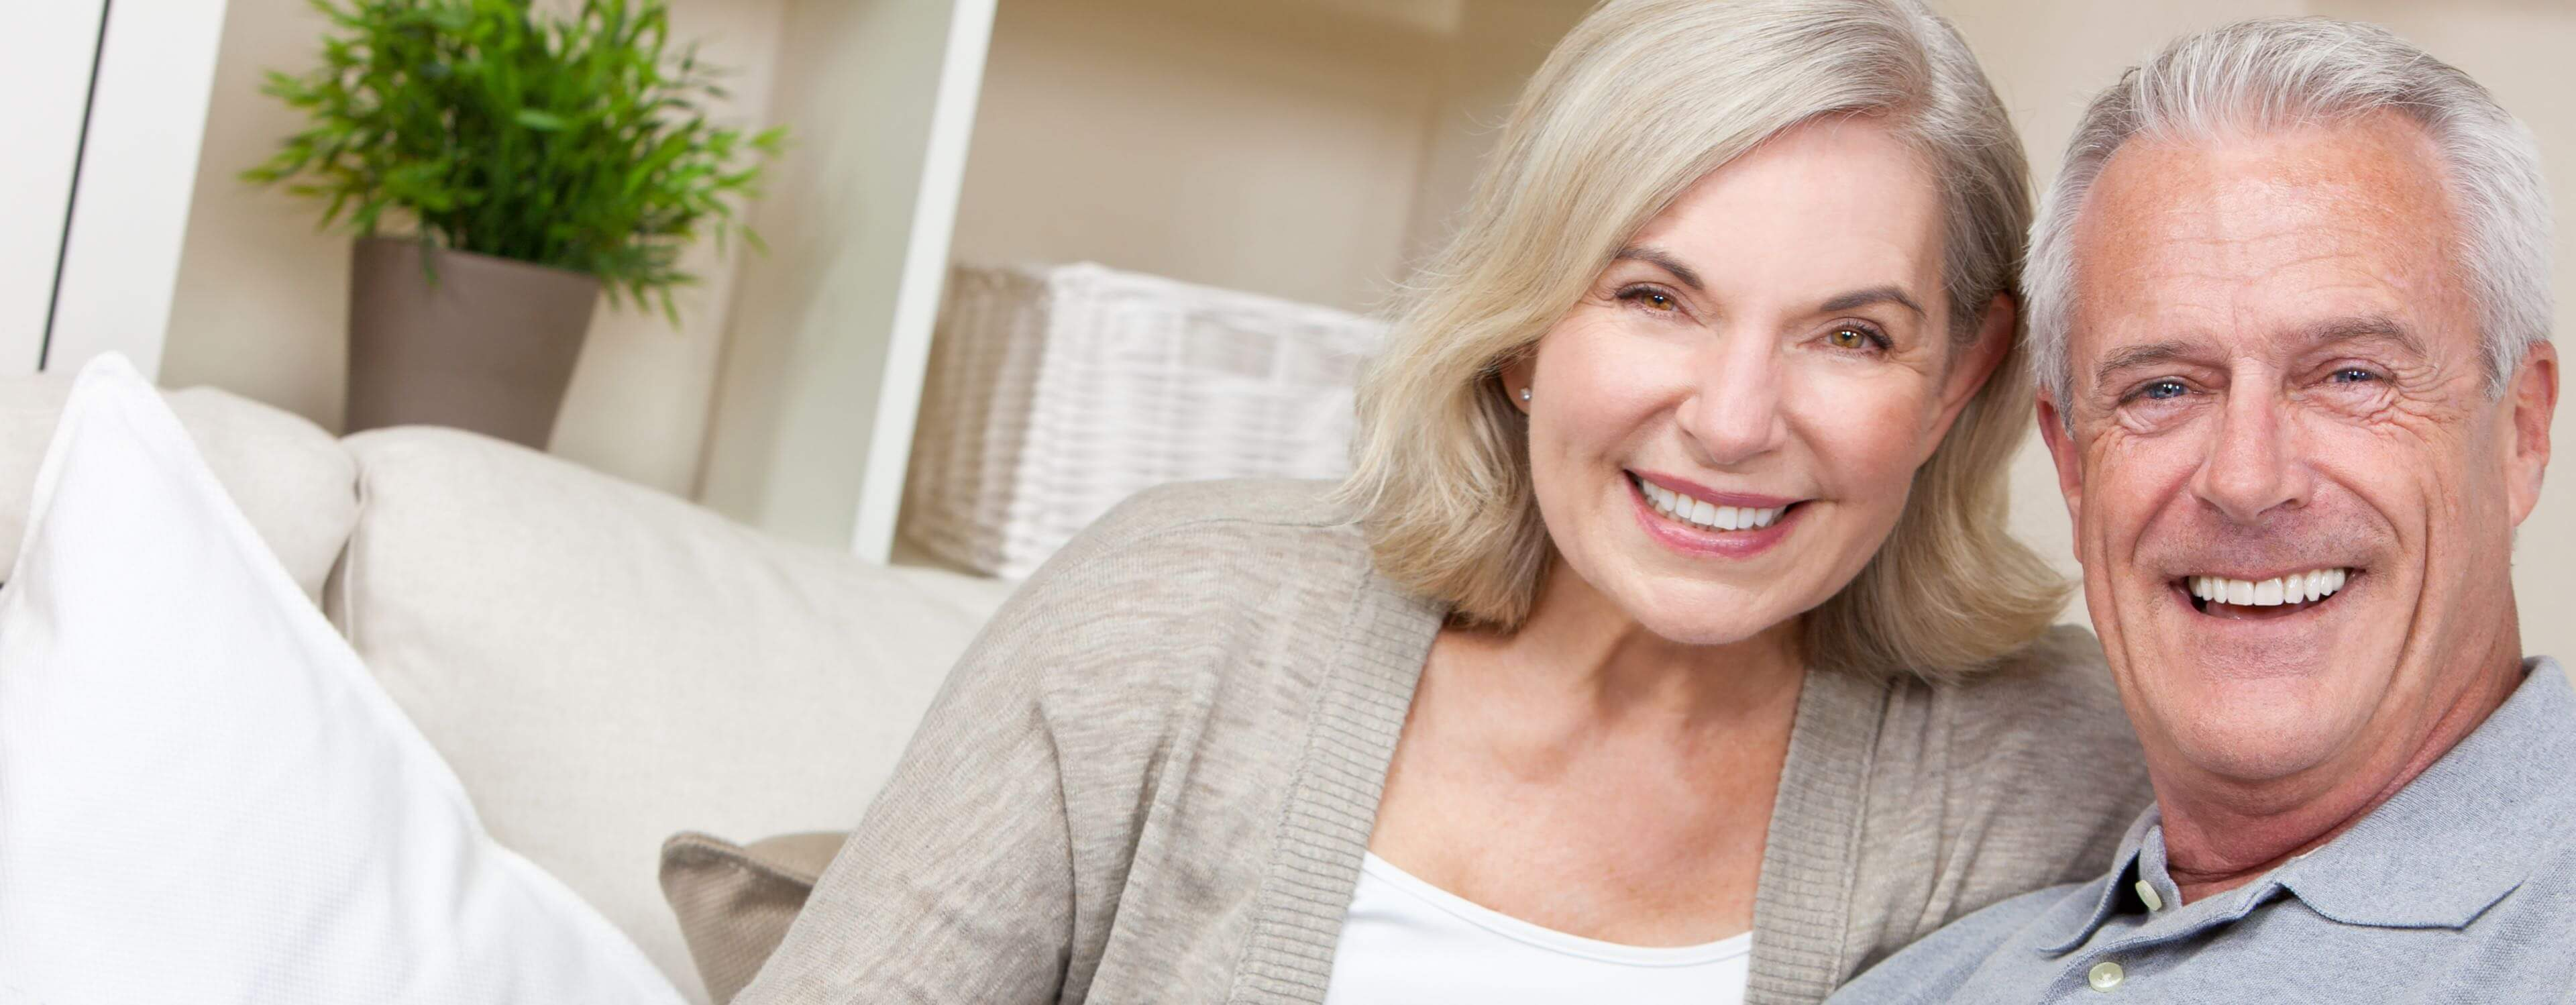 Dental Implants for Seniors - John R. Carson, D.D.S., P.C. | Cosmetic, Preventive, Restorative Dentist in Tucson